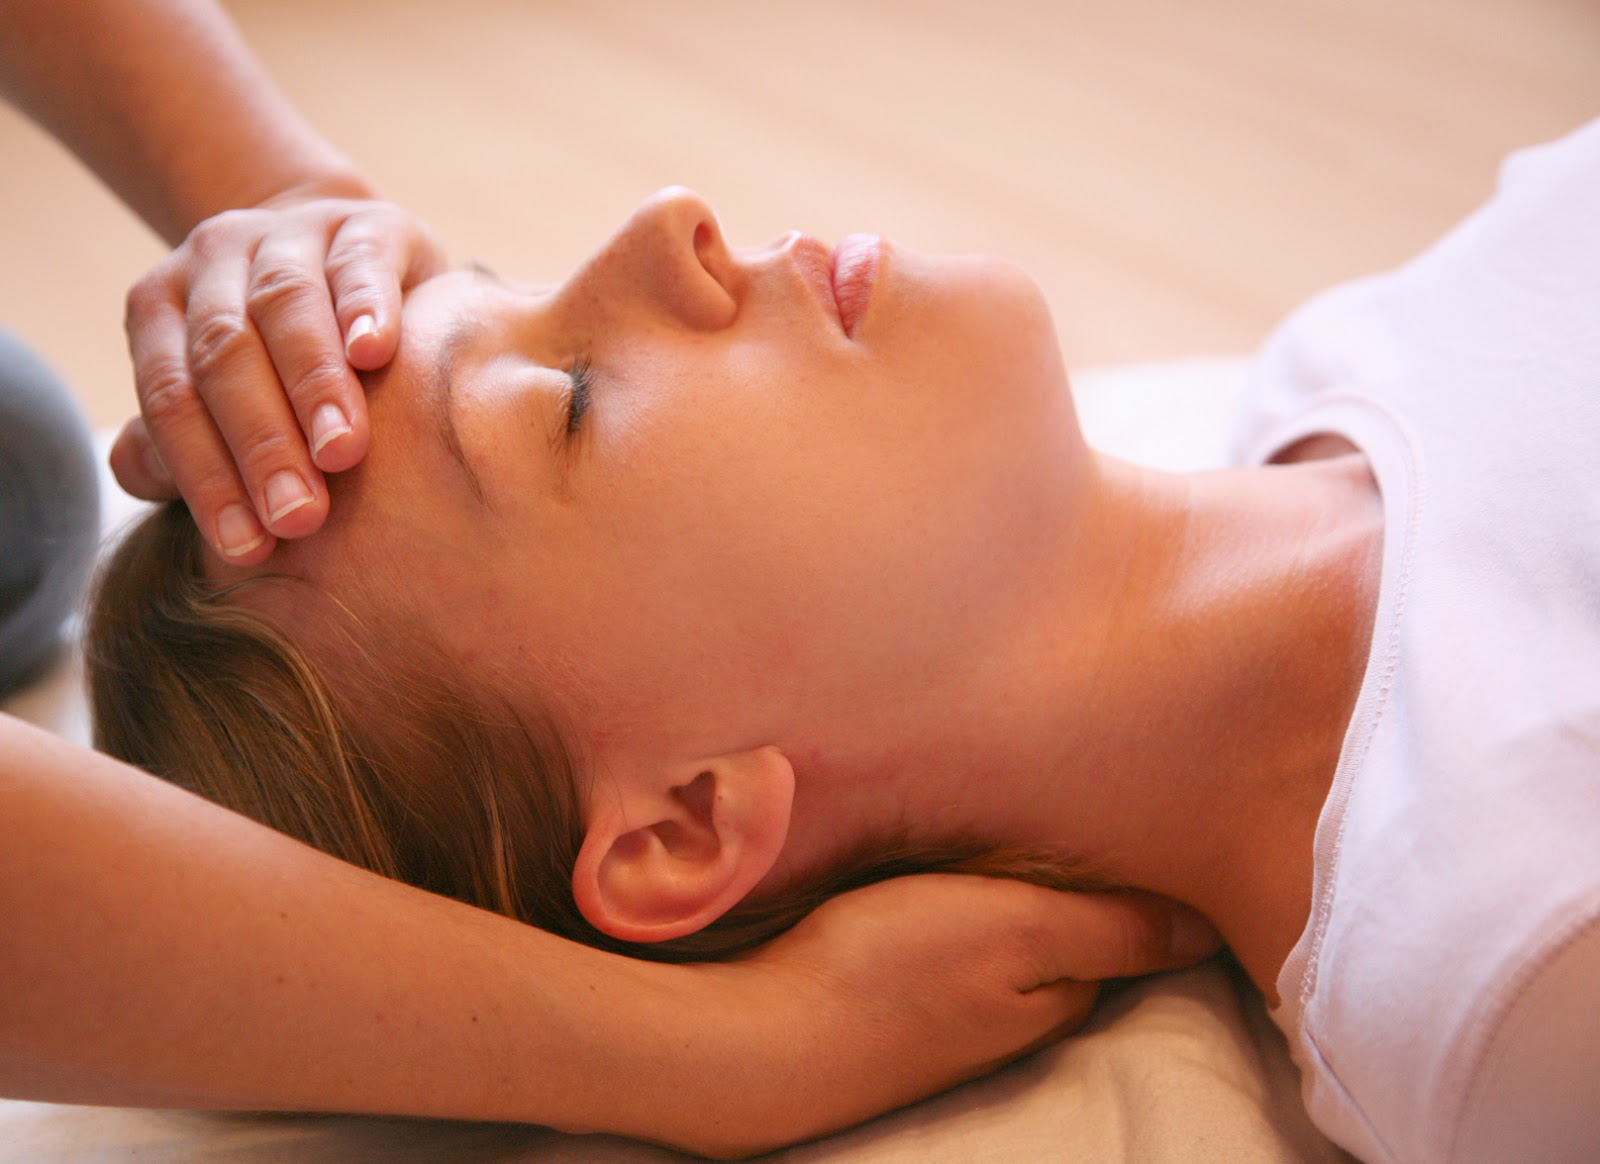 Zero Balancing and Craniosacral Therapy at SeaRhythms in Charlottesville, VA 22911, Tammy Mundy, LMT